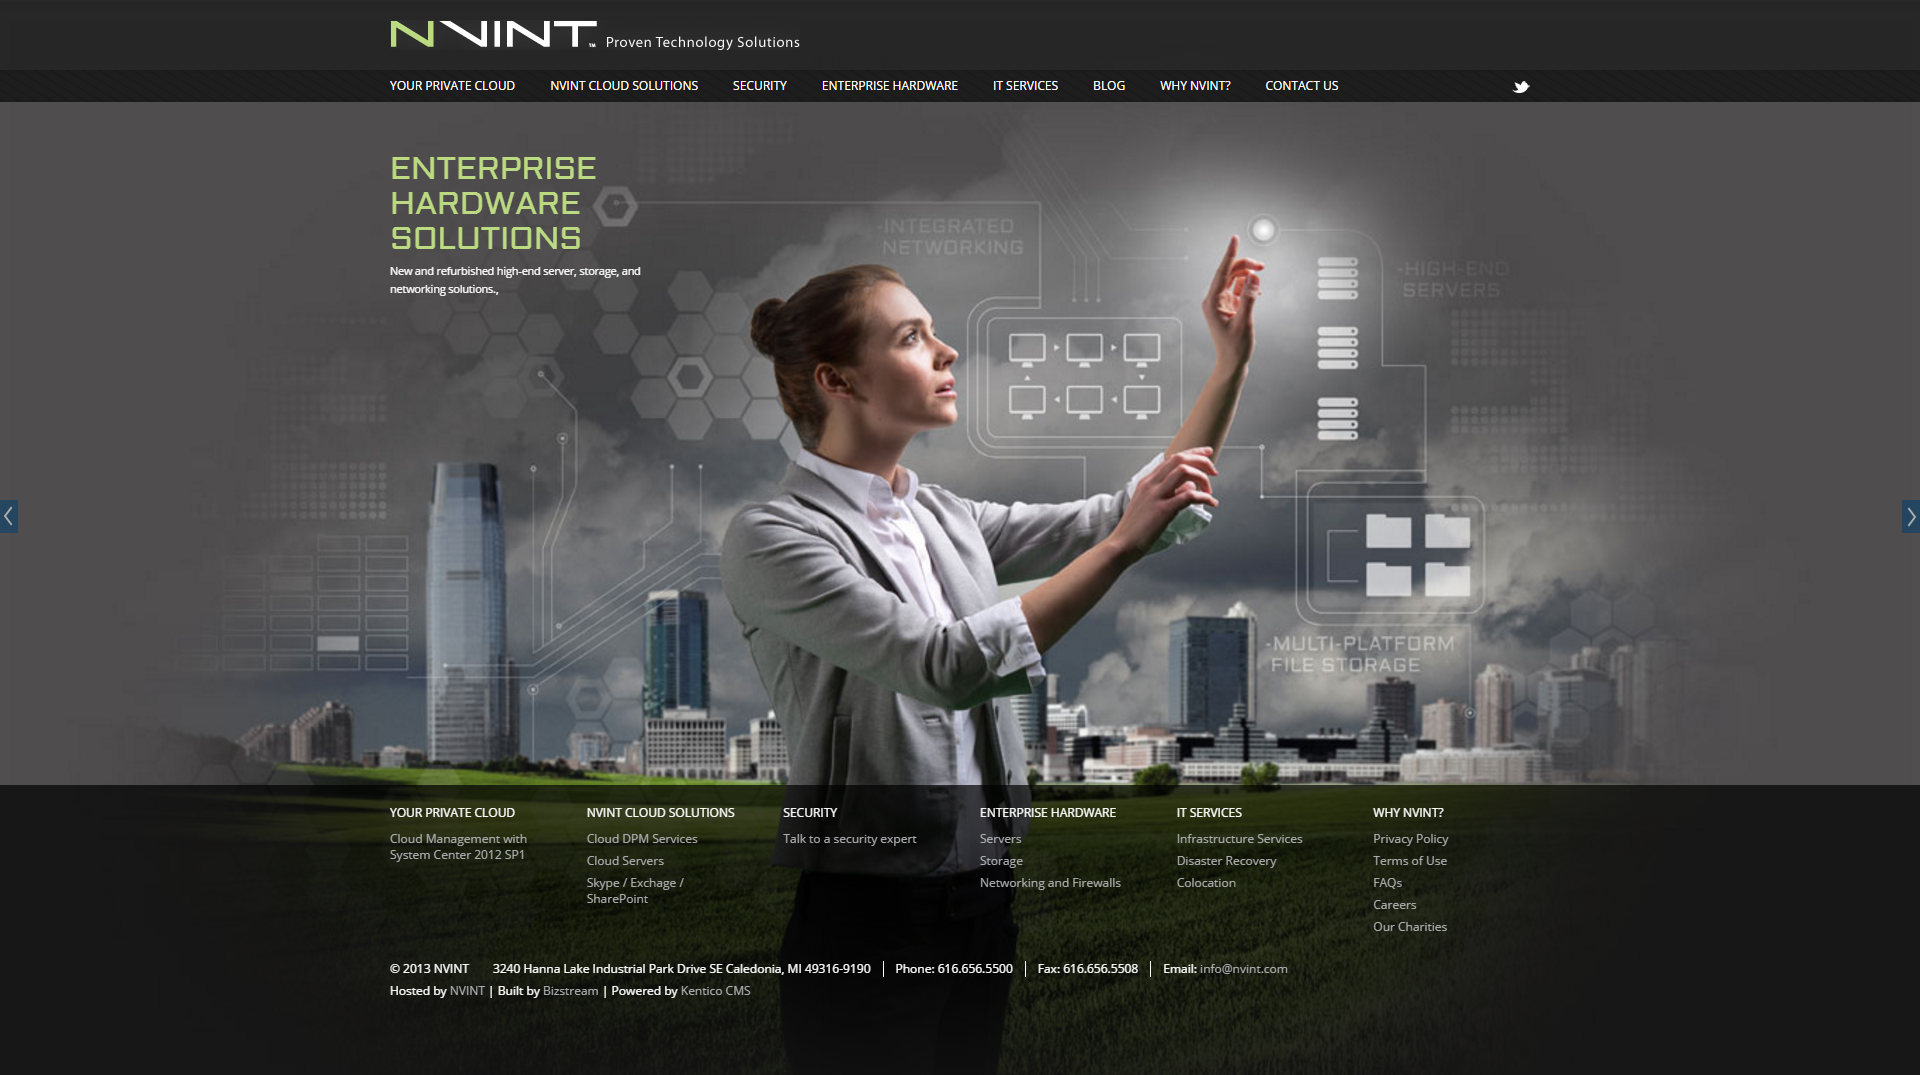 BizStream was able to configure and customize Kentico's out-of-the-box features to deliver a slick, polished design with NVINT's new site.